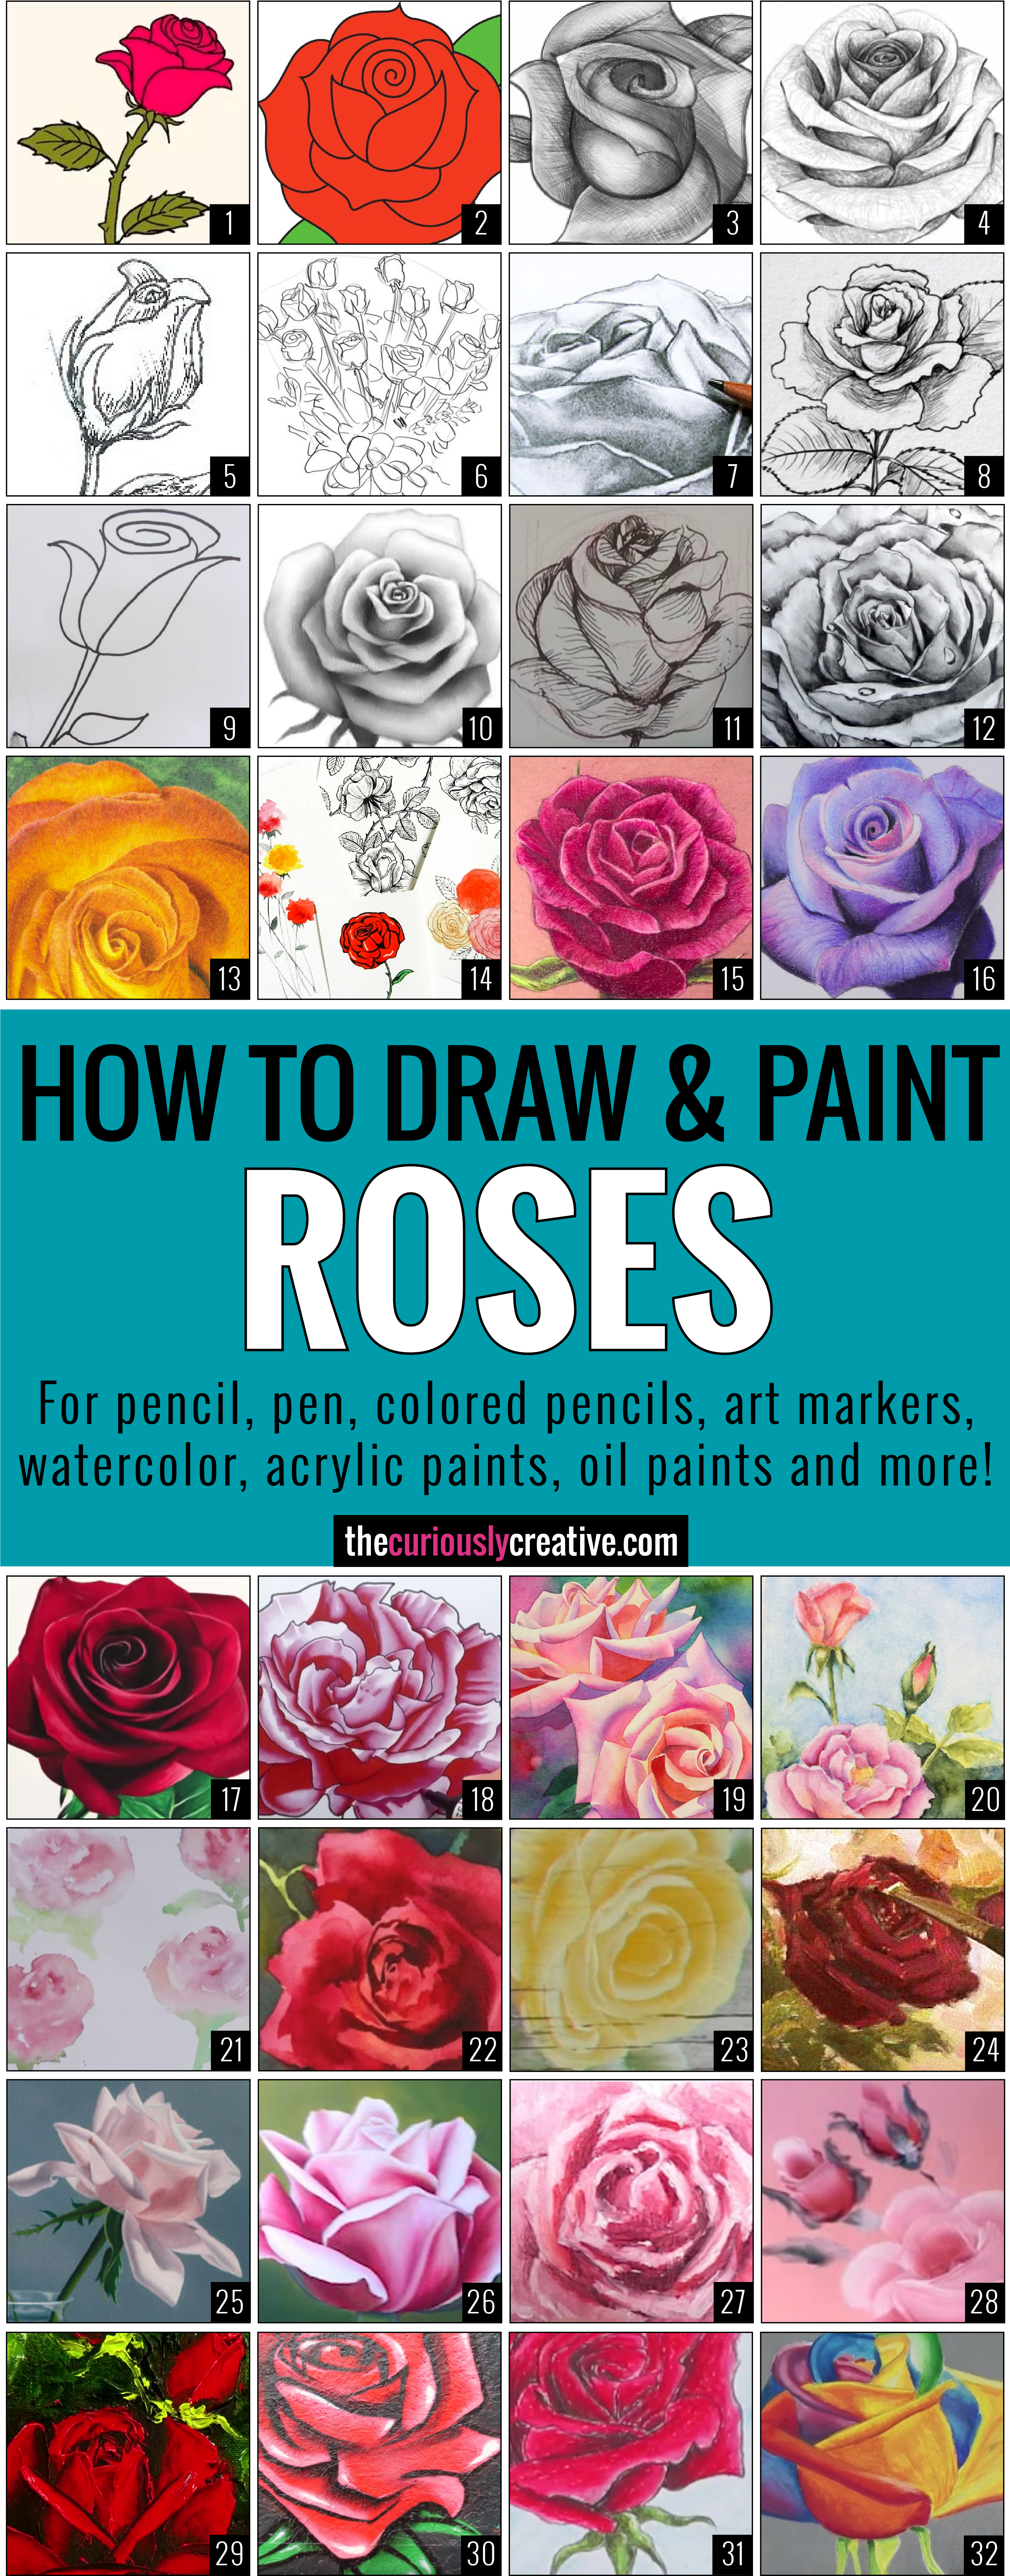 Transparent watercolor roses clipart - The Ultimate List Of Resources And Tutorials For How - Draw A Rose